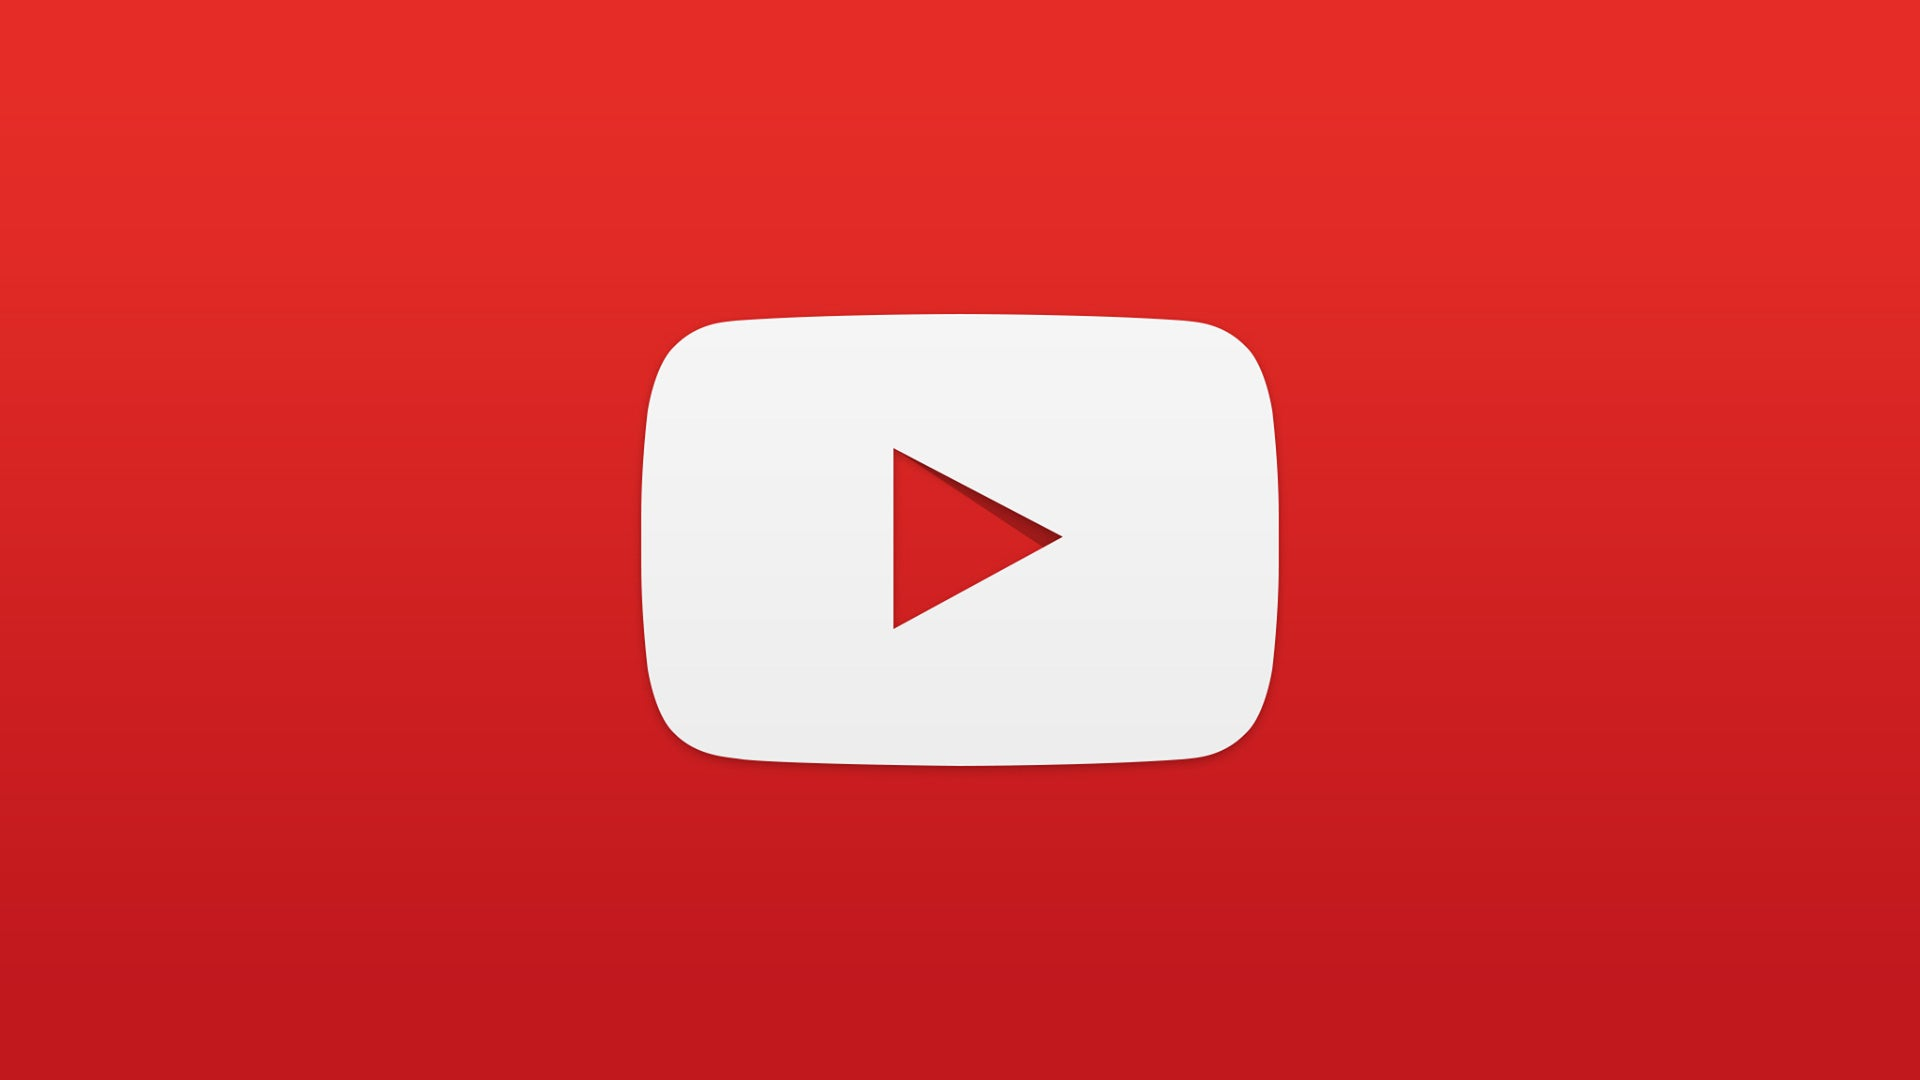 Youtube Pip Mode Now Free For Android Oreo Users But There Are Catches Testing Electrical Installation Part One